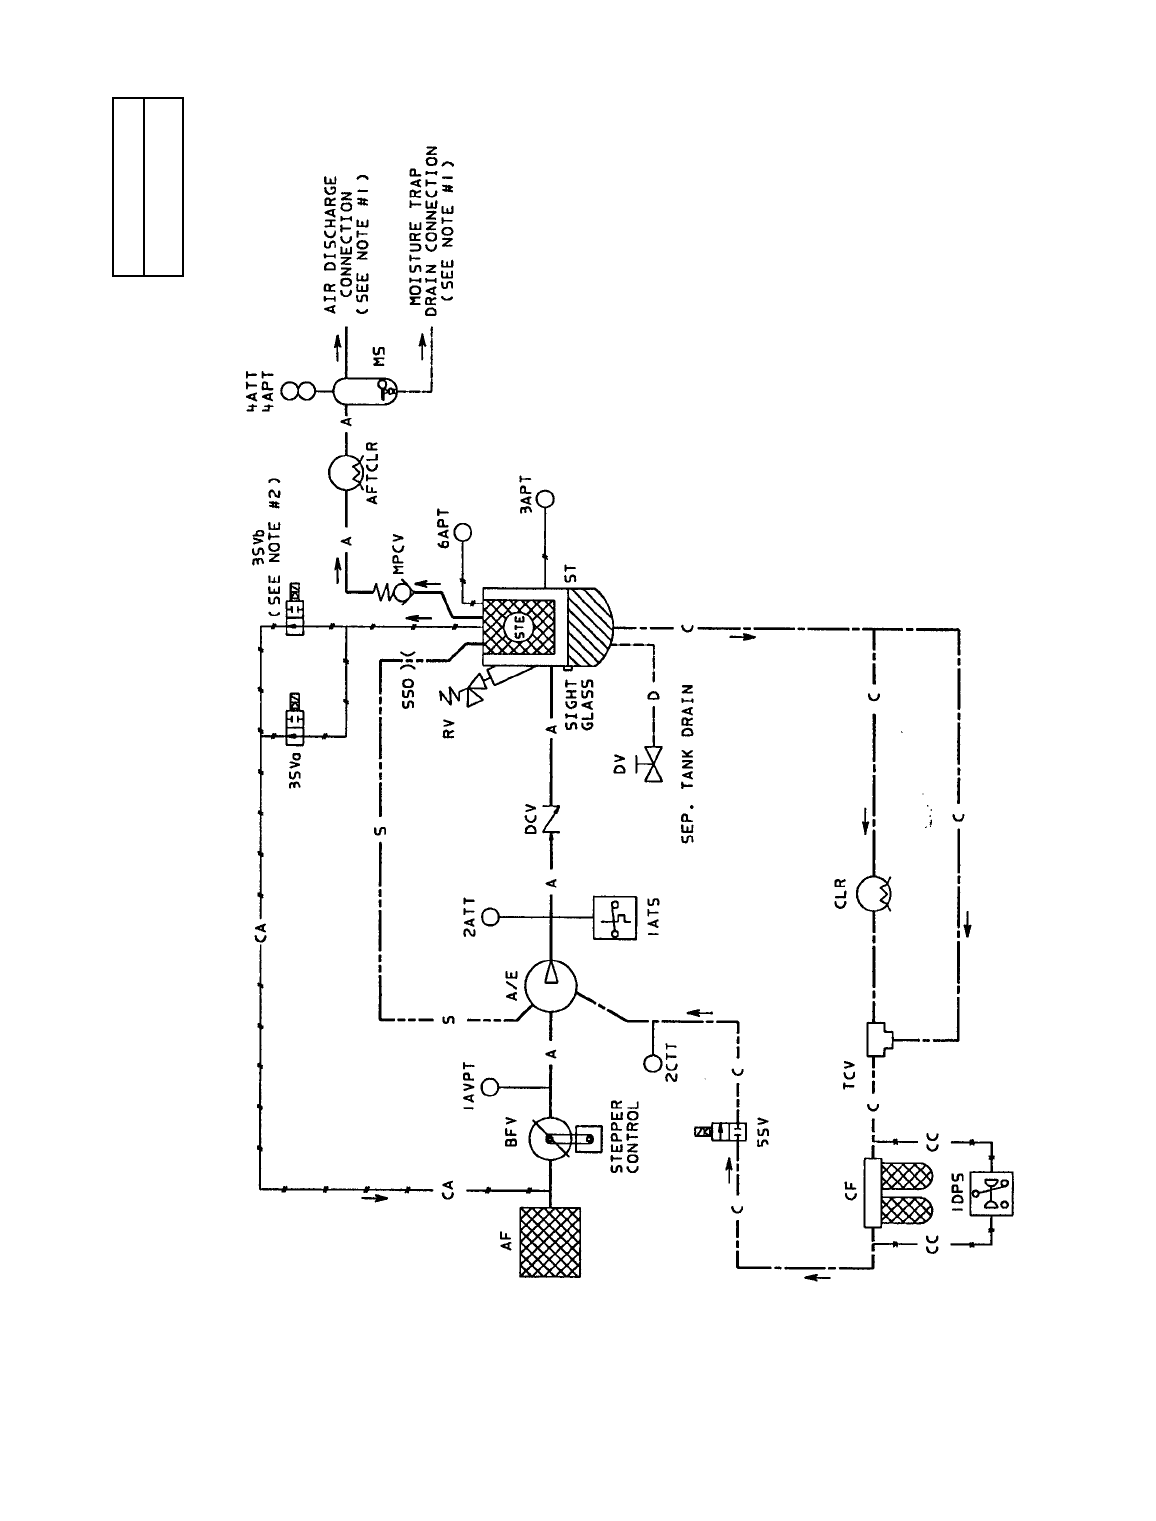 Air Compressor Wiring Diagram Lead Lag Horn Ingersoll Rand 125 200 Hp 90 160 Kw Users Manual Text Pages On